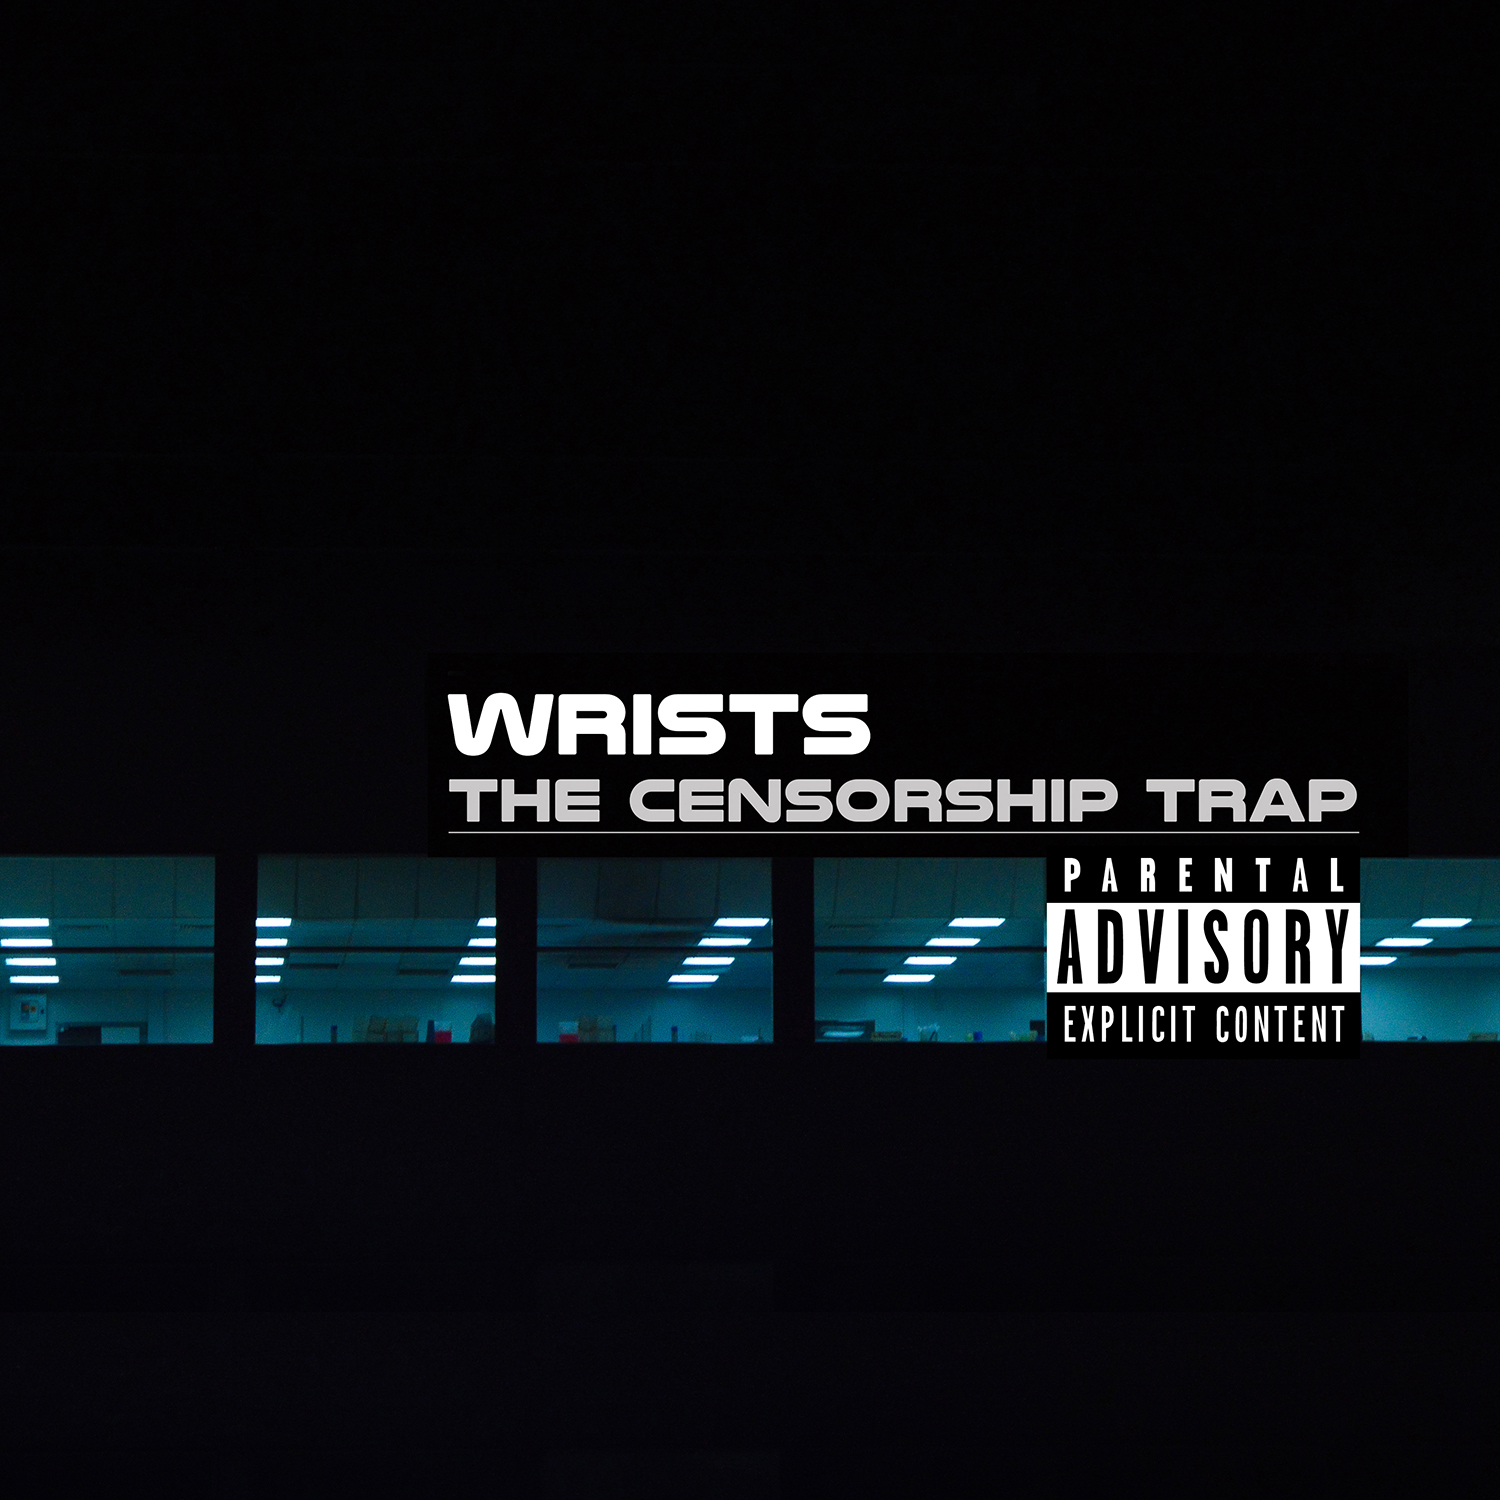 The Censorship Trap Album Cover